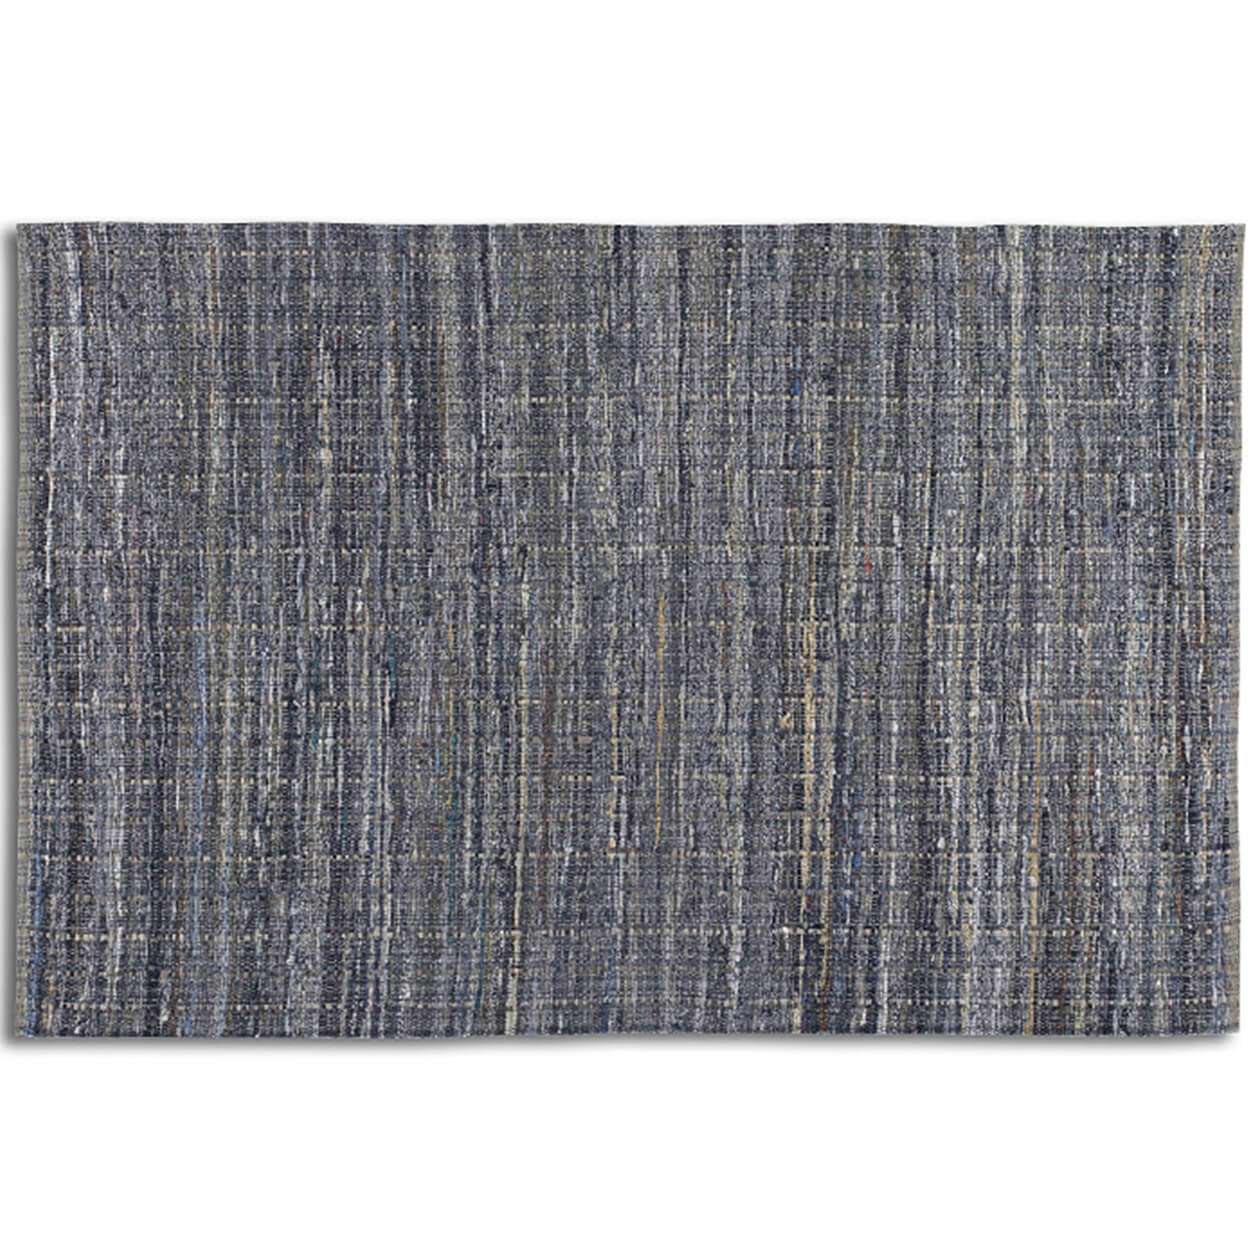 8x10 Recycled Cotton Rug